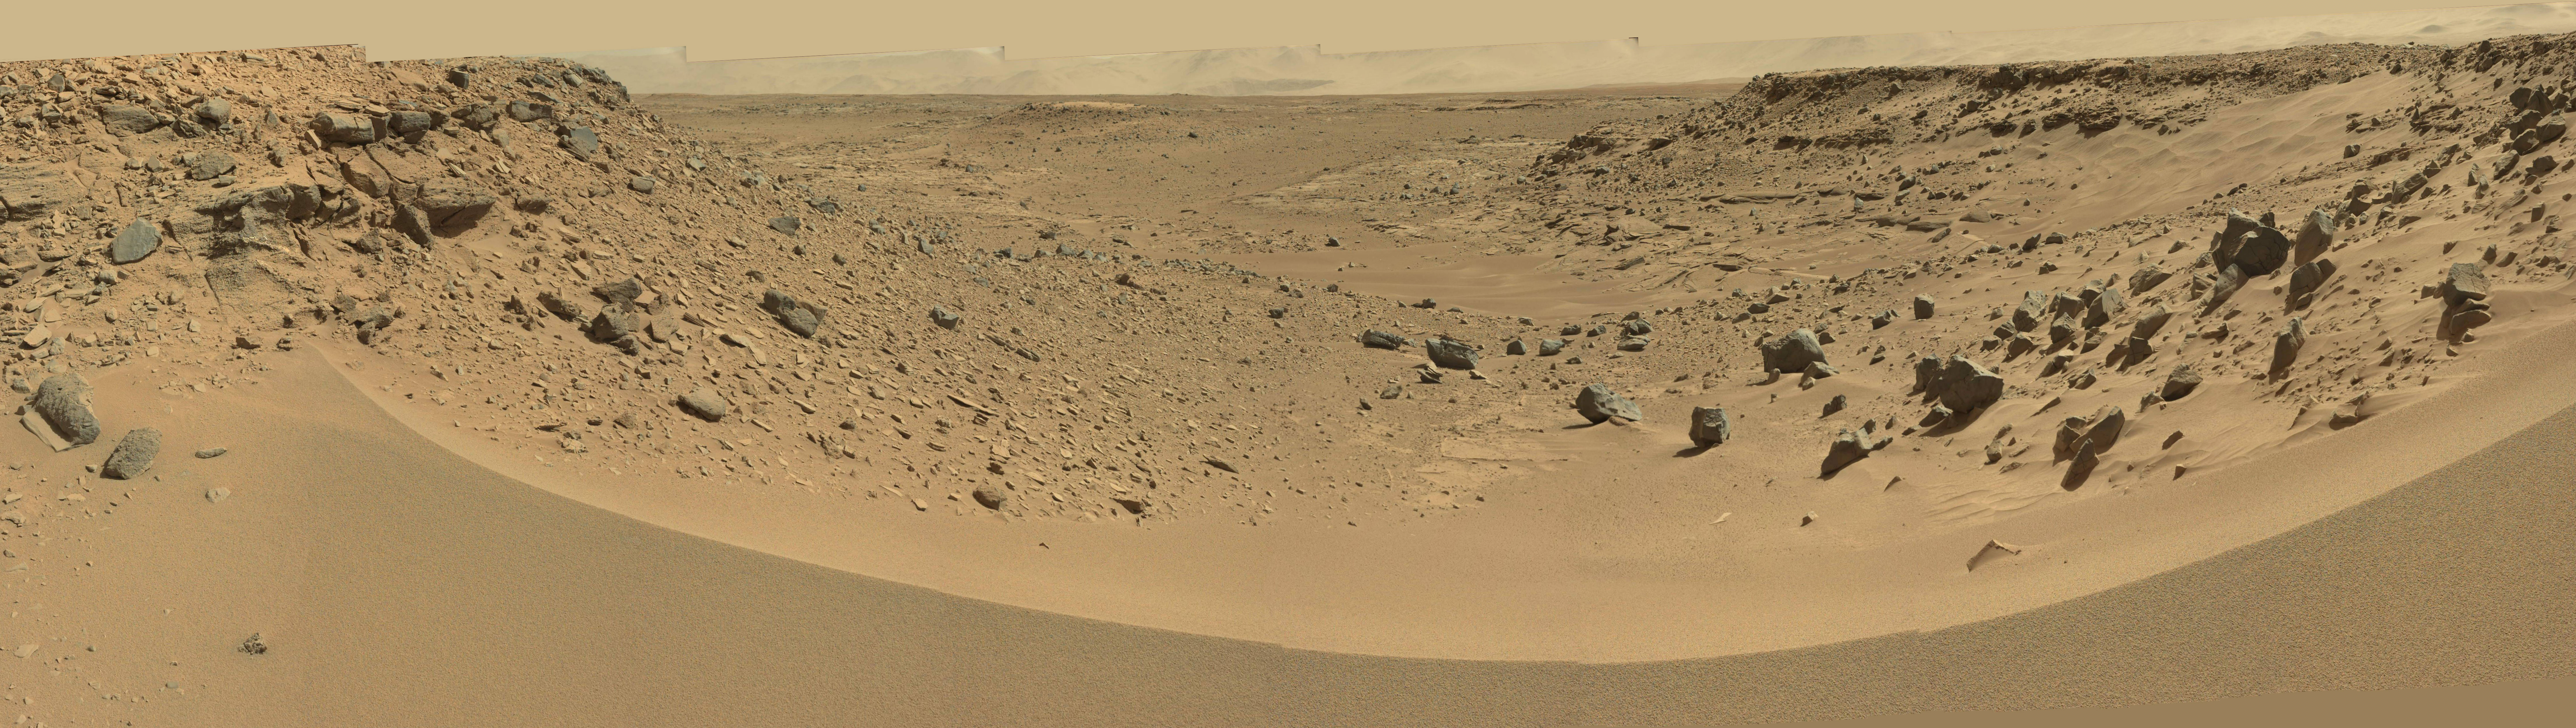 gale crater rover in mars - photo #18